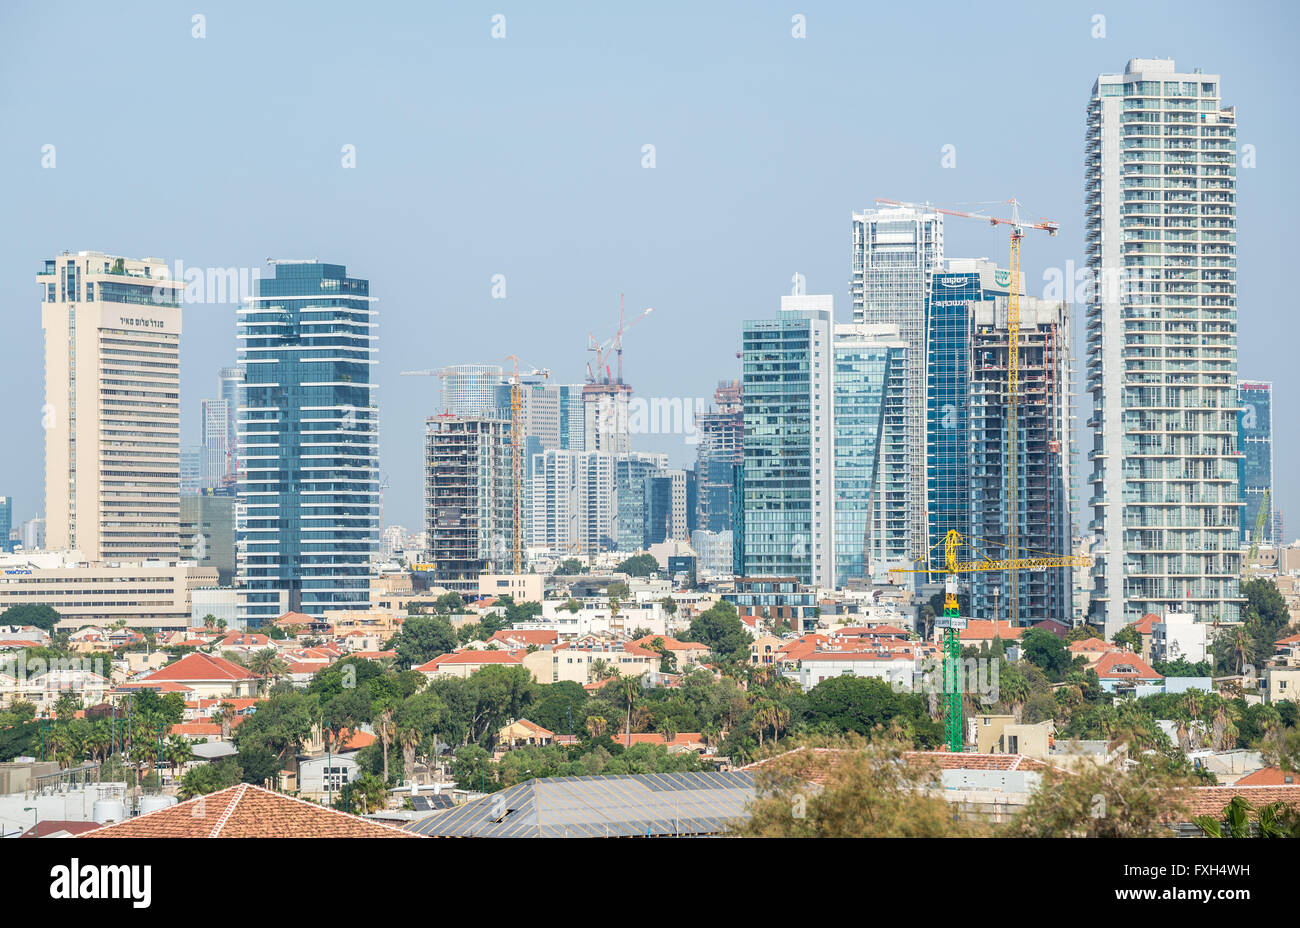 View from Abrasha park, Tel Aviv, Israel with Shalom Meir Tower (1L), 1 Rothschild Boulevard (2L), Neve Tzedek Tower - Stock Image